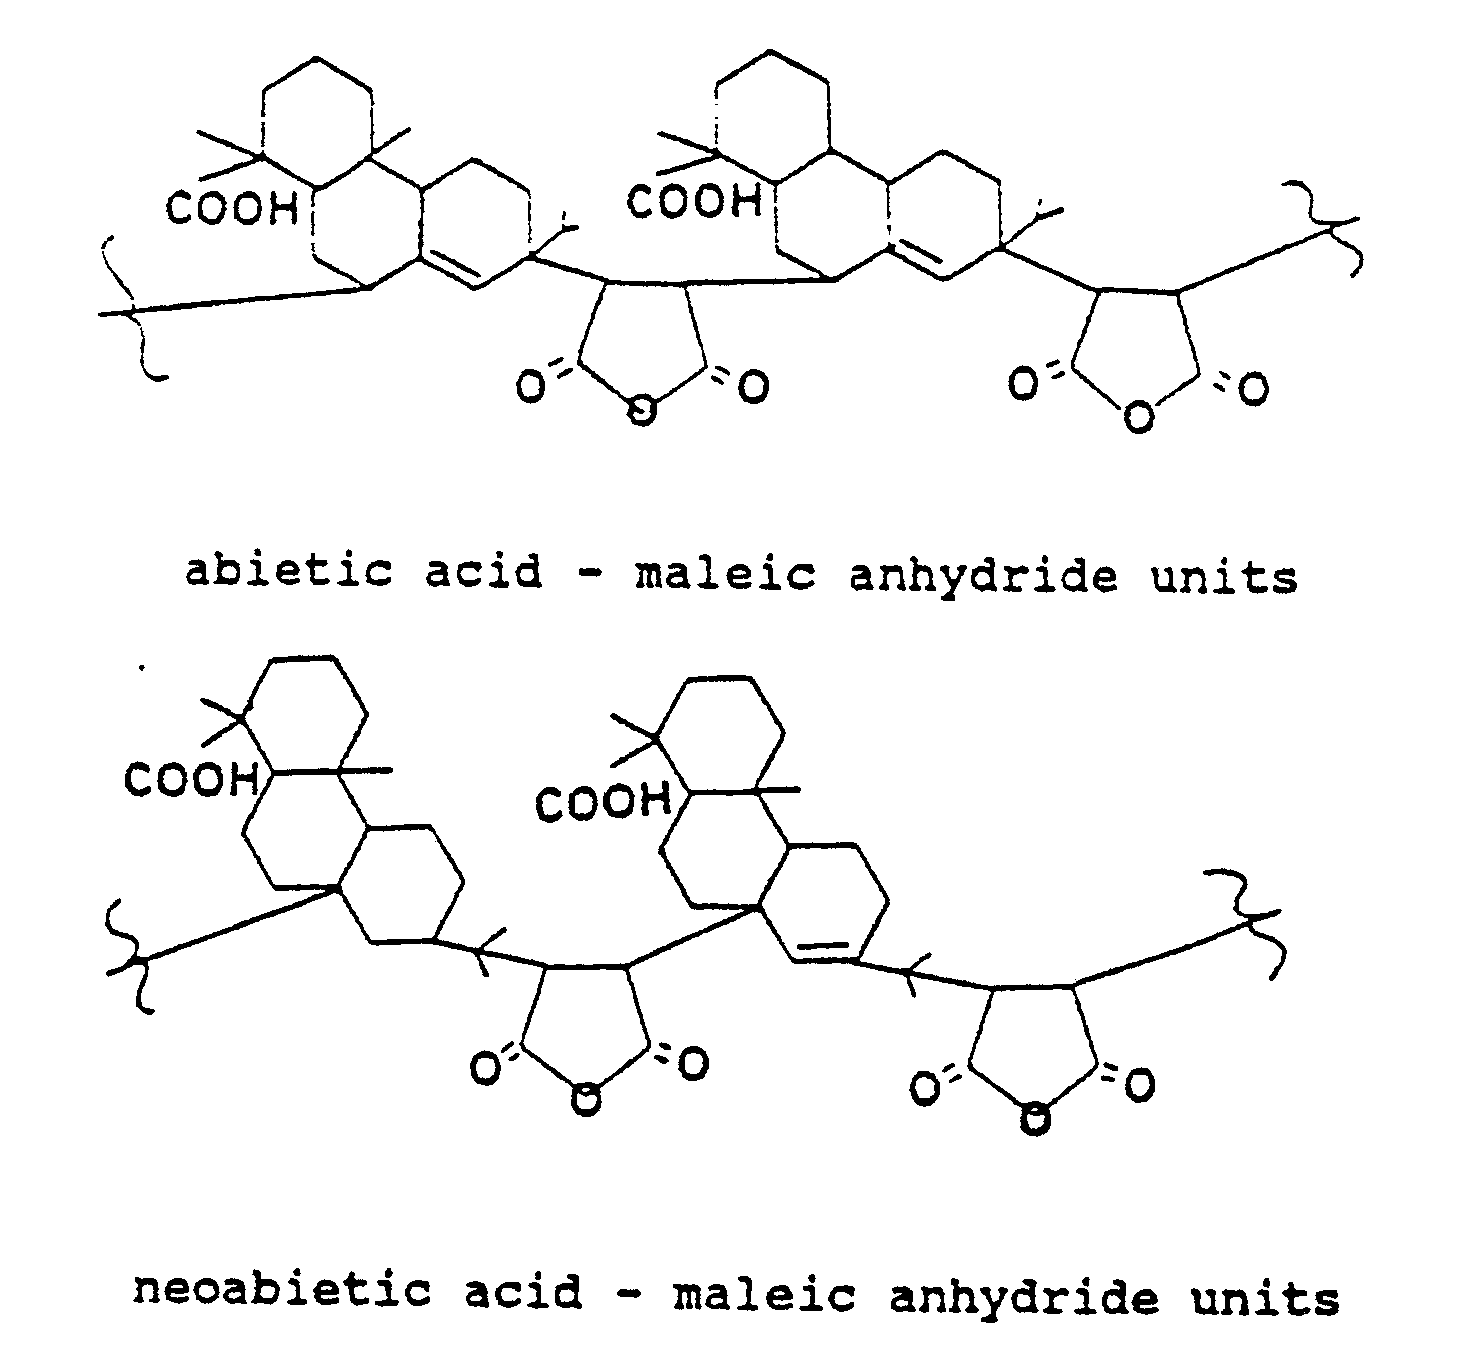 ... - Copolymer of resin acids and maleic anhydride - Google Patents